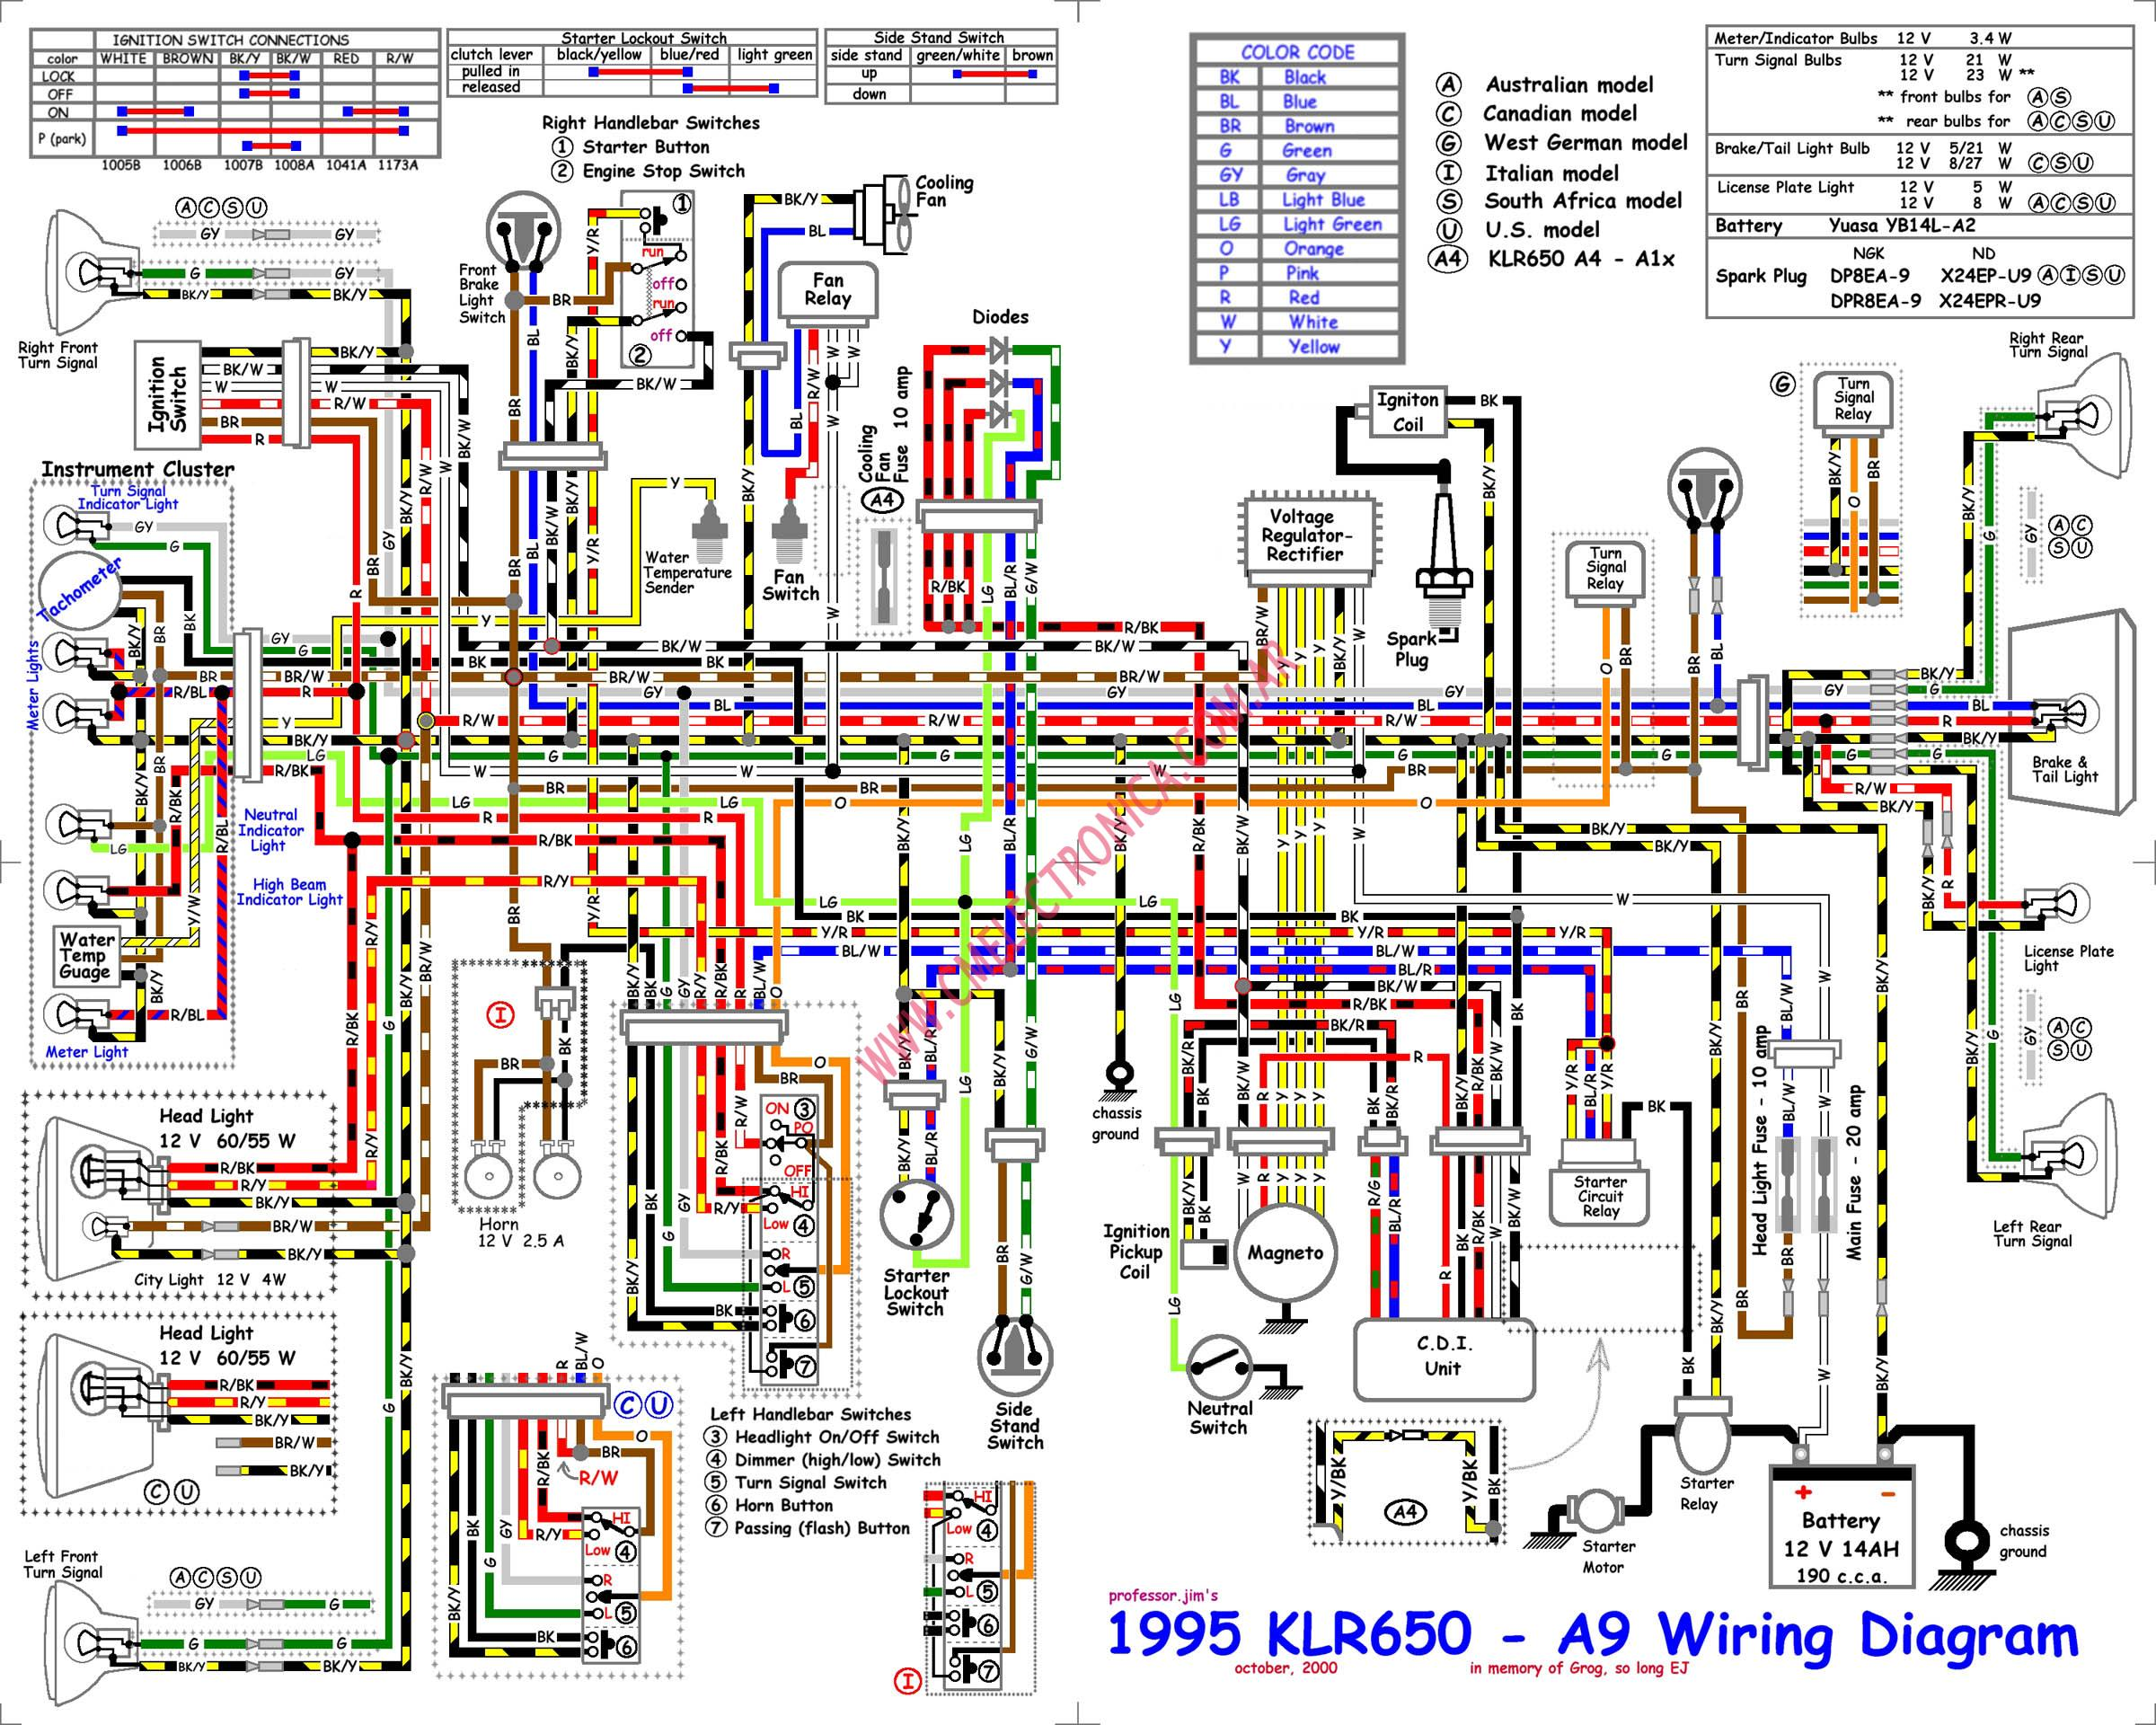 park light wiring diagram 1988 ford ranger with Kawasaki Klr650 on 2011 09 01 archive likewise 52pyq Mercury Grand Marquis Car Won T Start Blue Checked additionally parison furthermore Cranks Ok But No Start Checklist For Fuel Injected Mustangs moreover Ford E Series E 250 1995 Fuse Box Diagram.